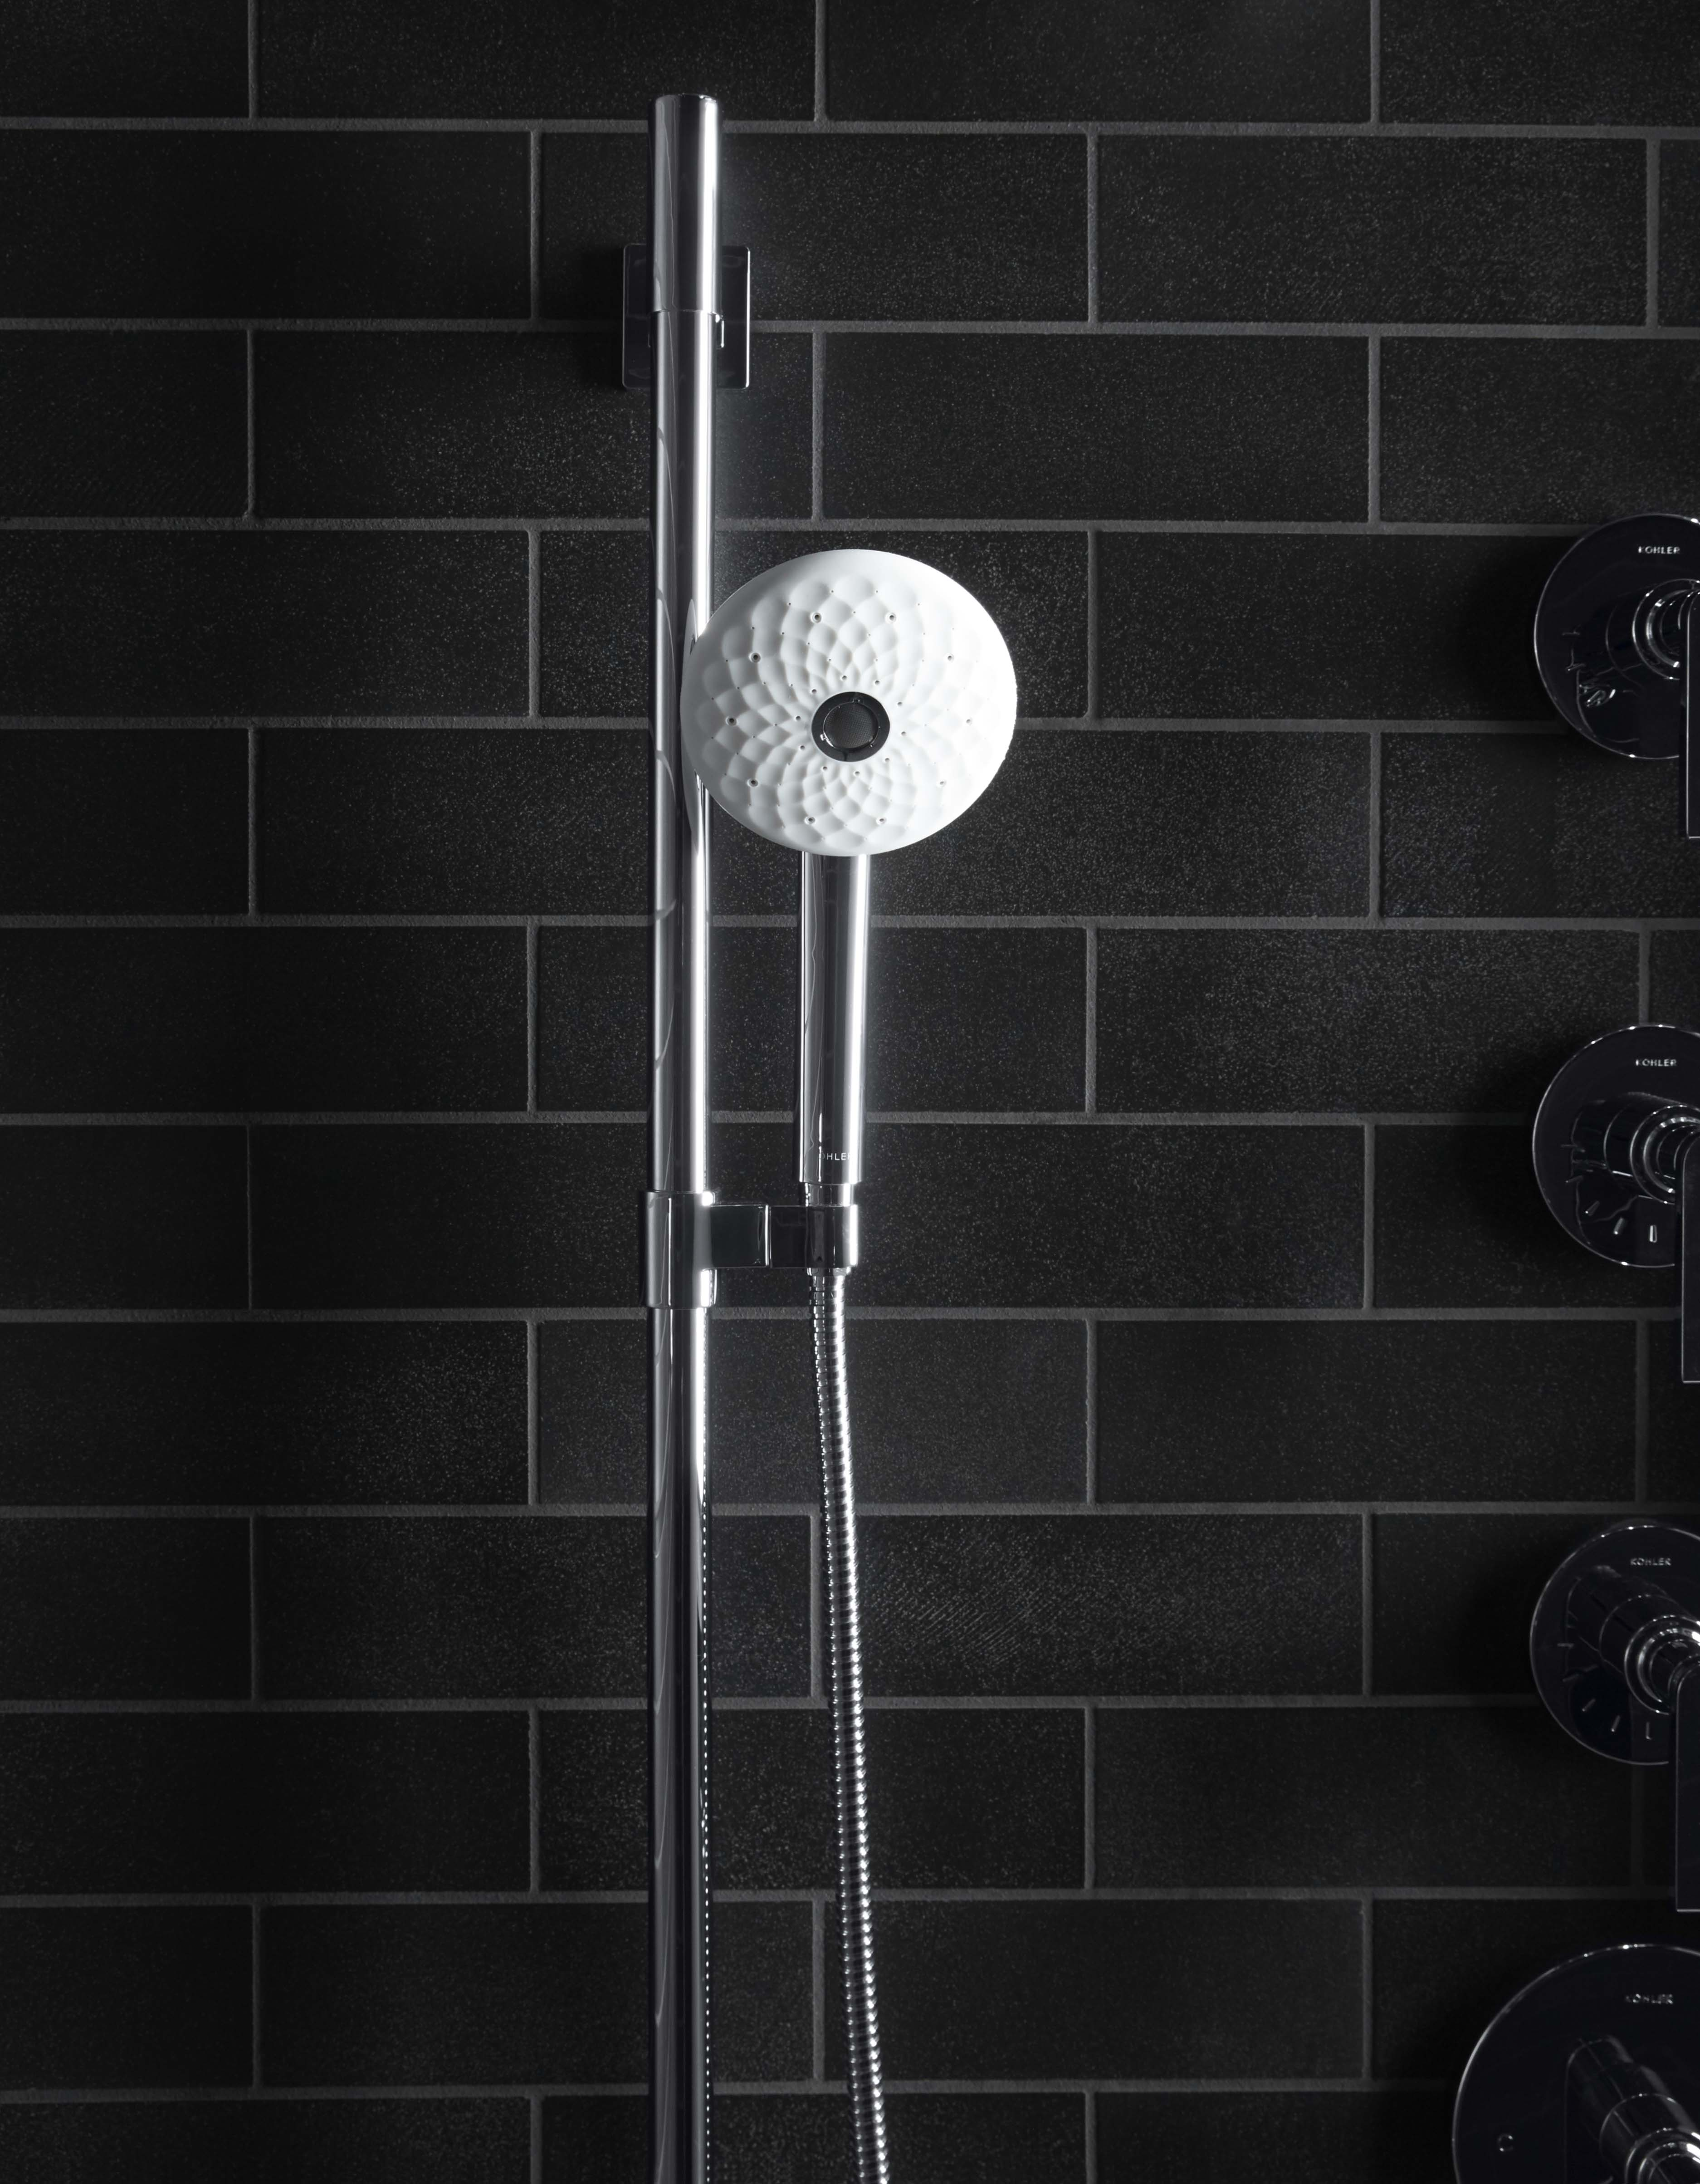 Exhale Handshower     Awaken Slidebar     A handshower-slidebar combo is perfect for reaching sore muscles, scrubbing your muddy dog and cleaning the shower itself. Or just adjust it for your height and enjoy your shower as usual.